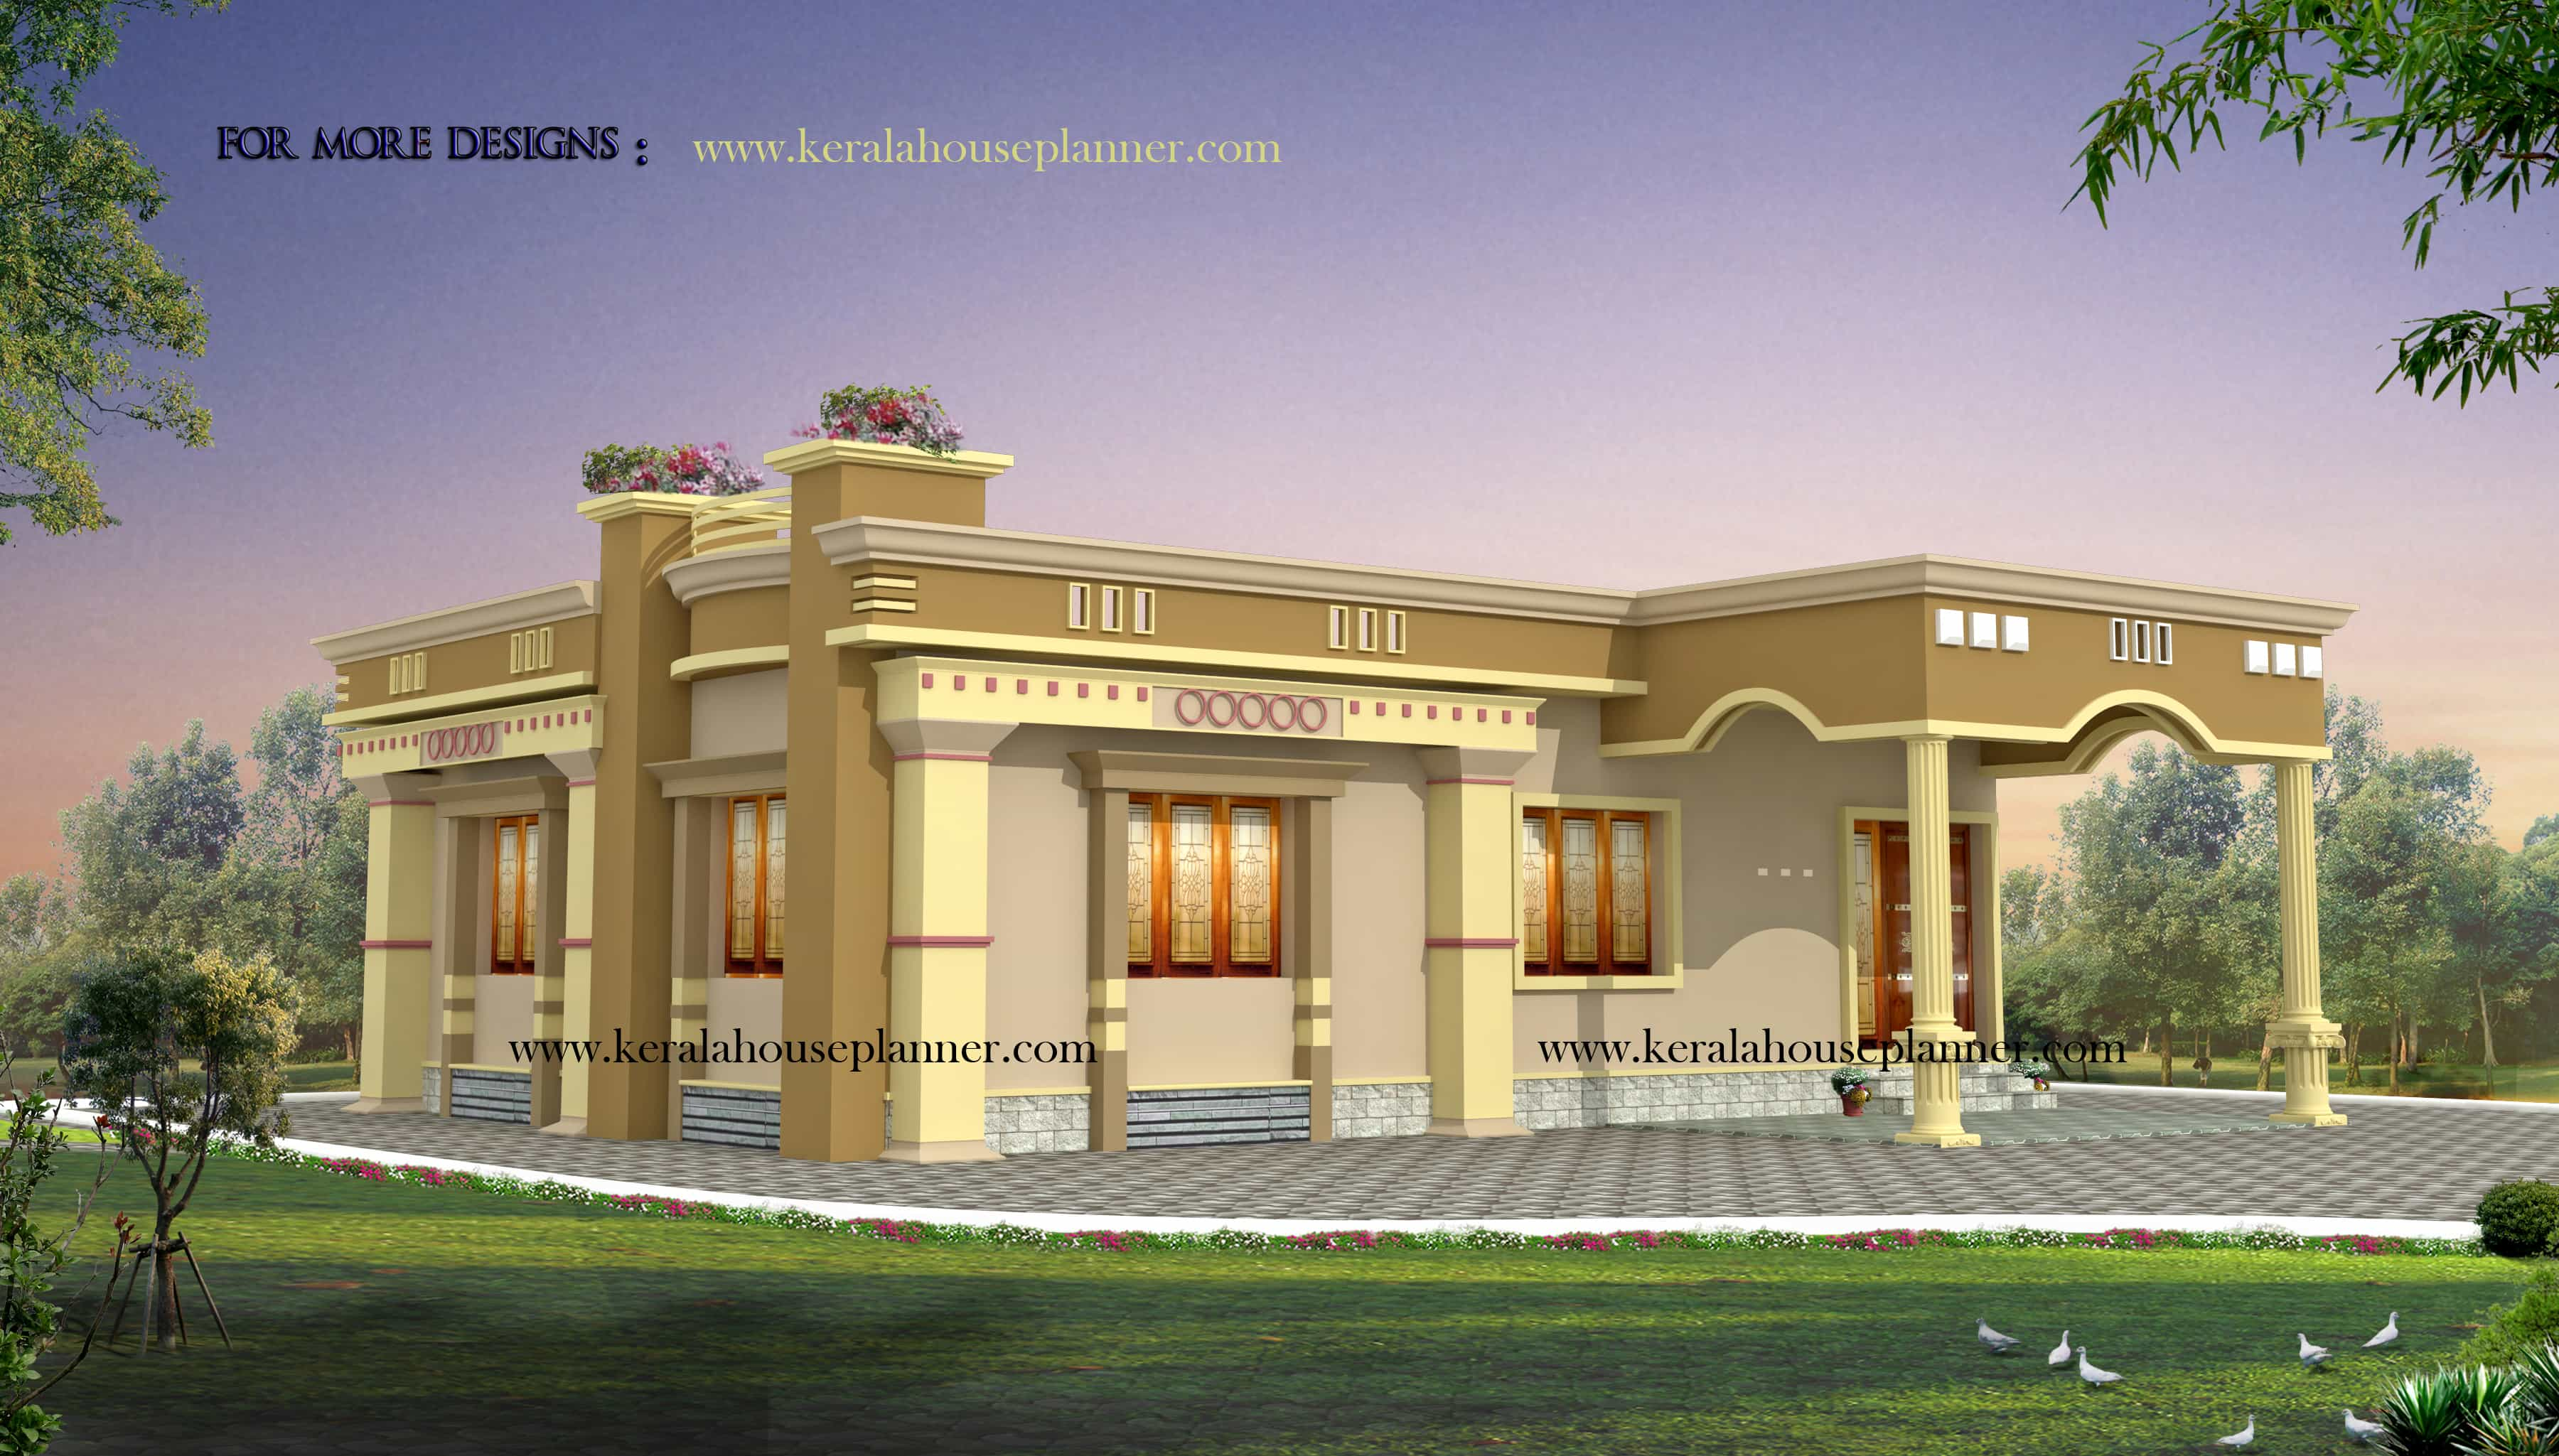 Kerala house plans 1200 sq ft with photos khp Home house plans